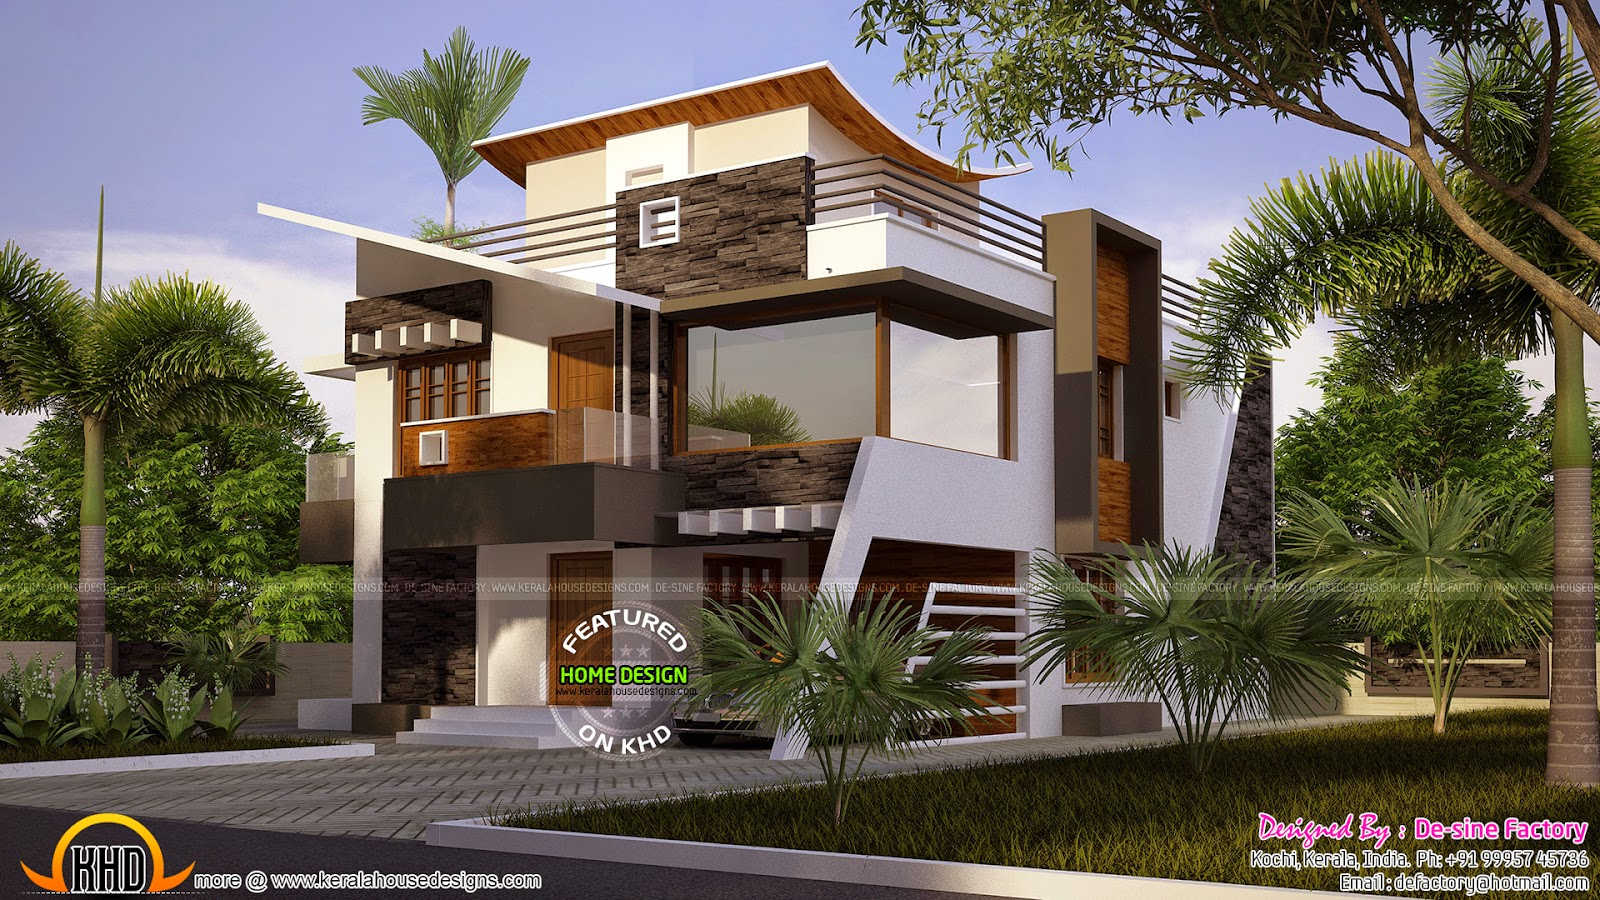 Simple modern house | keralahousedesigns